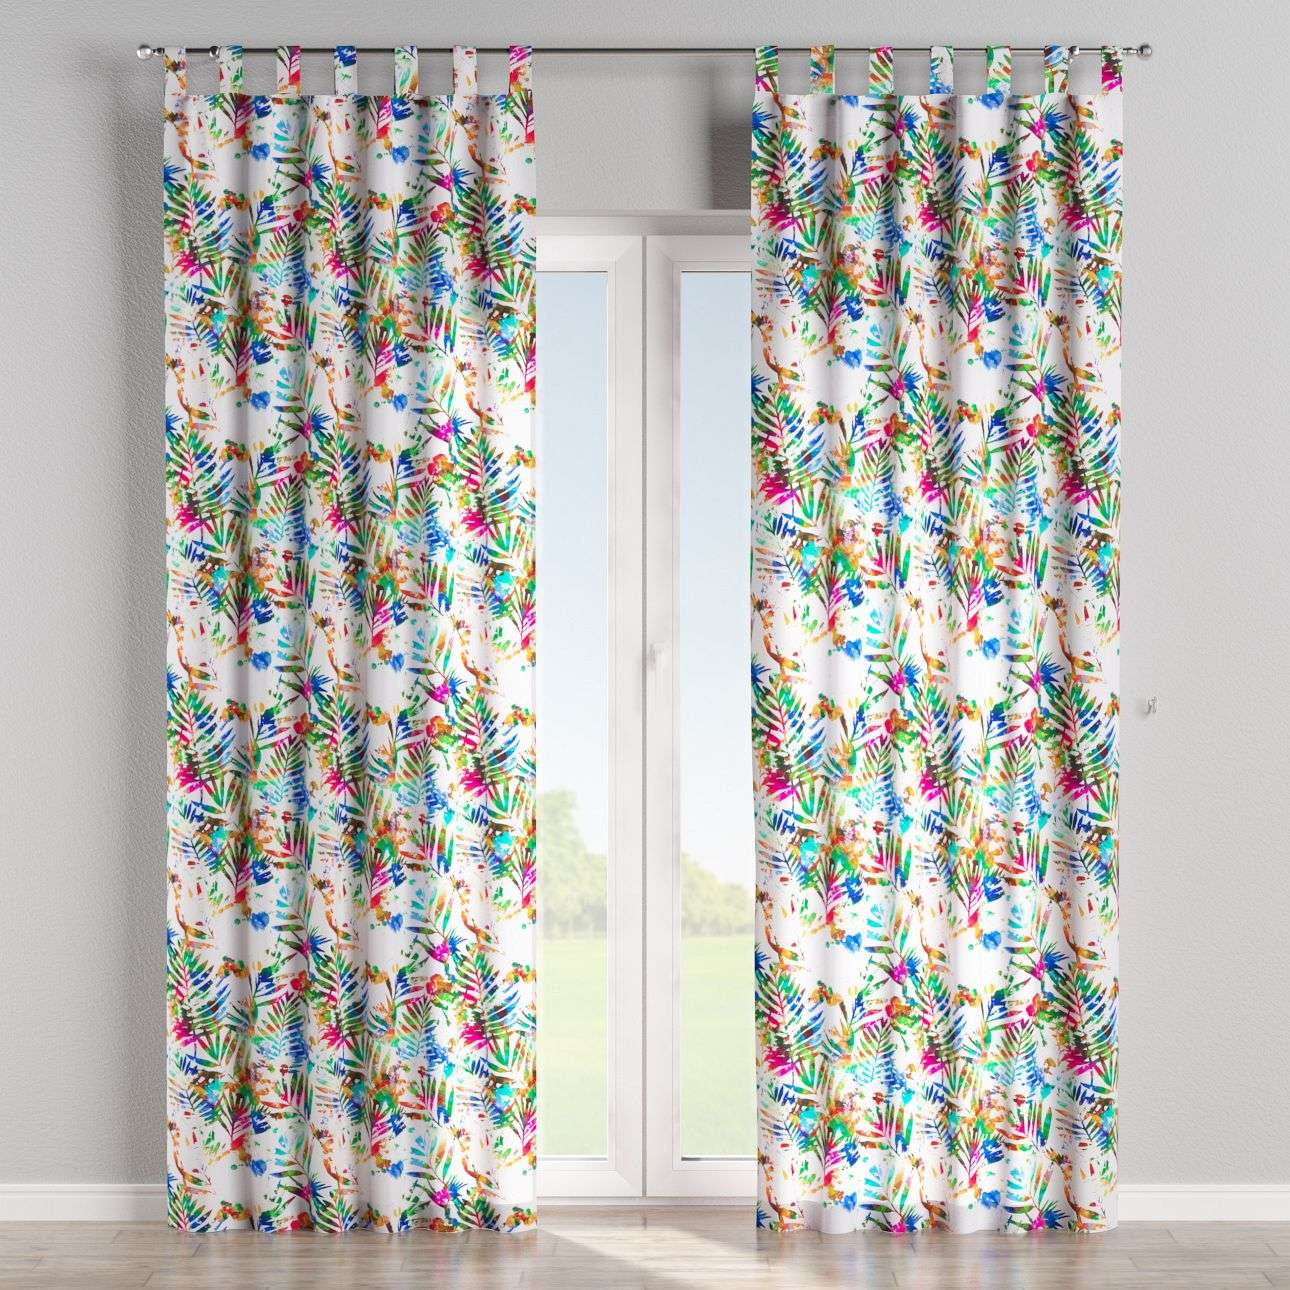 Tab top curtains 130 x 260 cm (51 x 102 inch) in collection New Art, fabric: 140-22